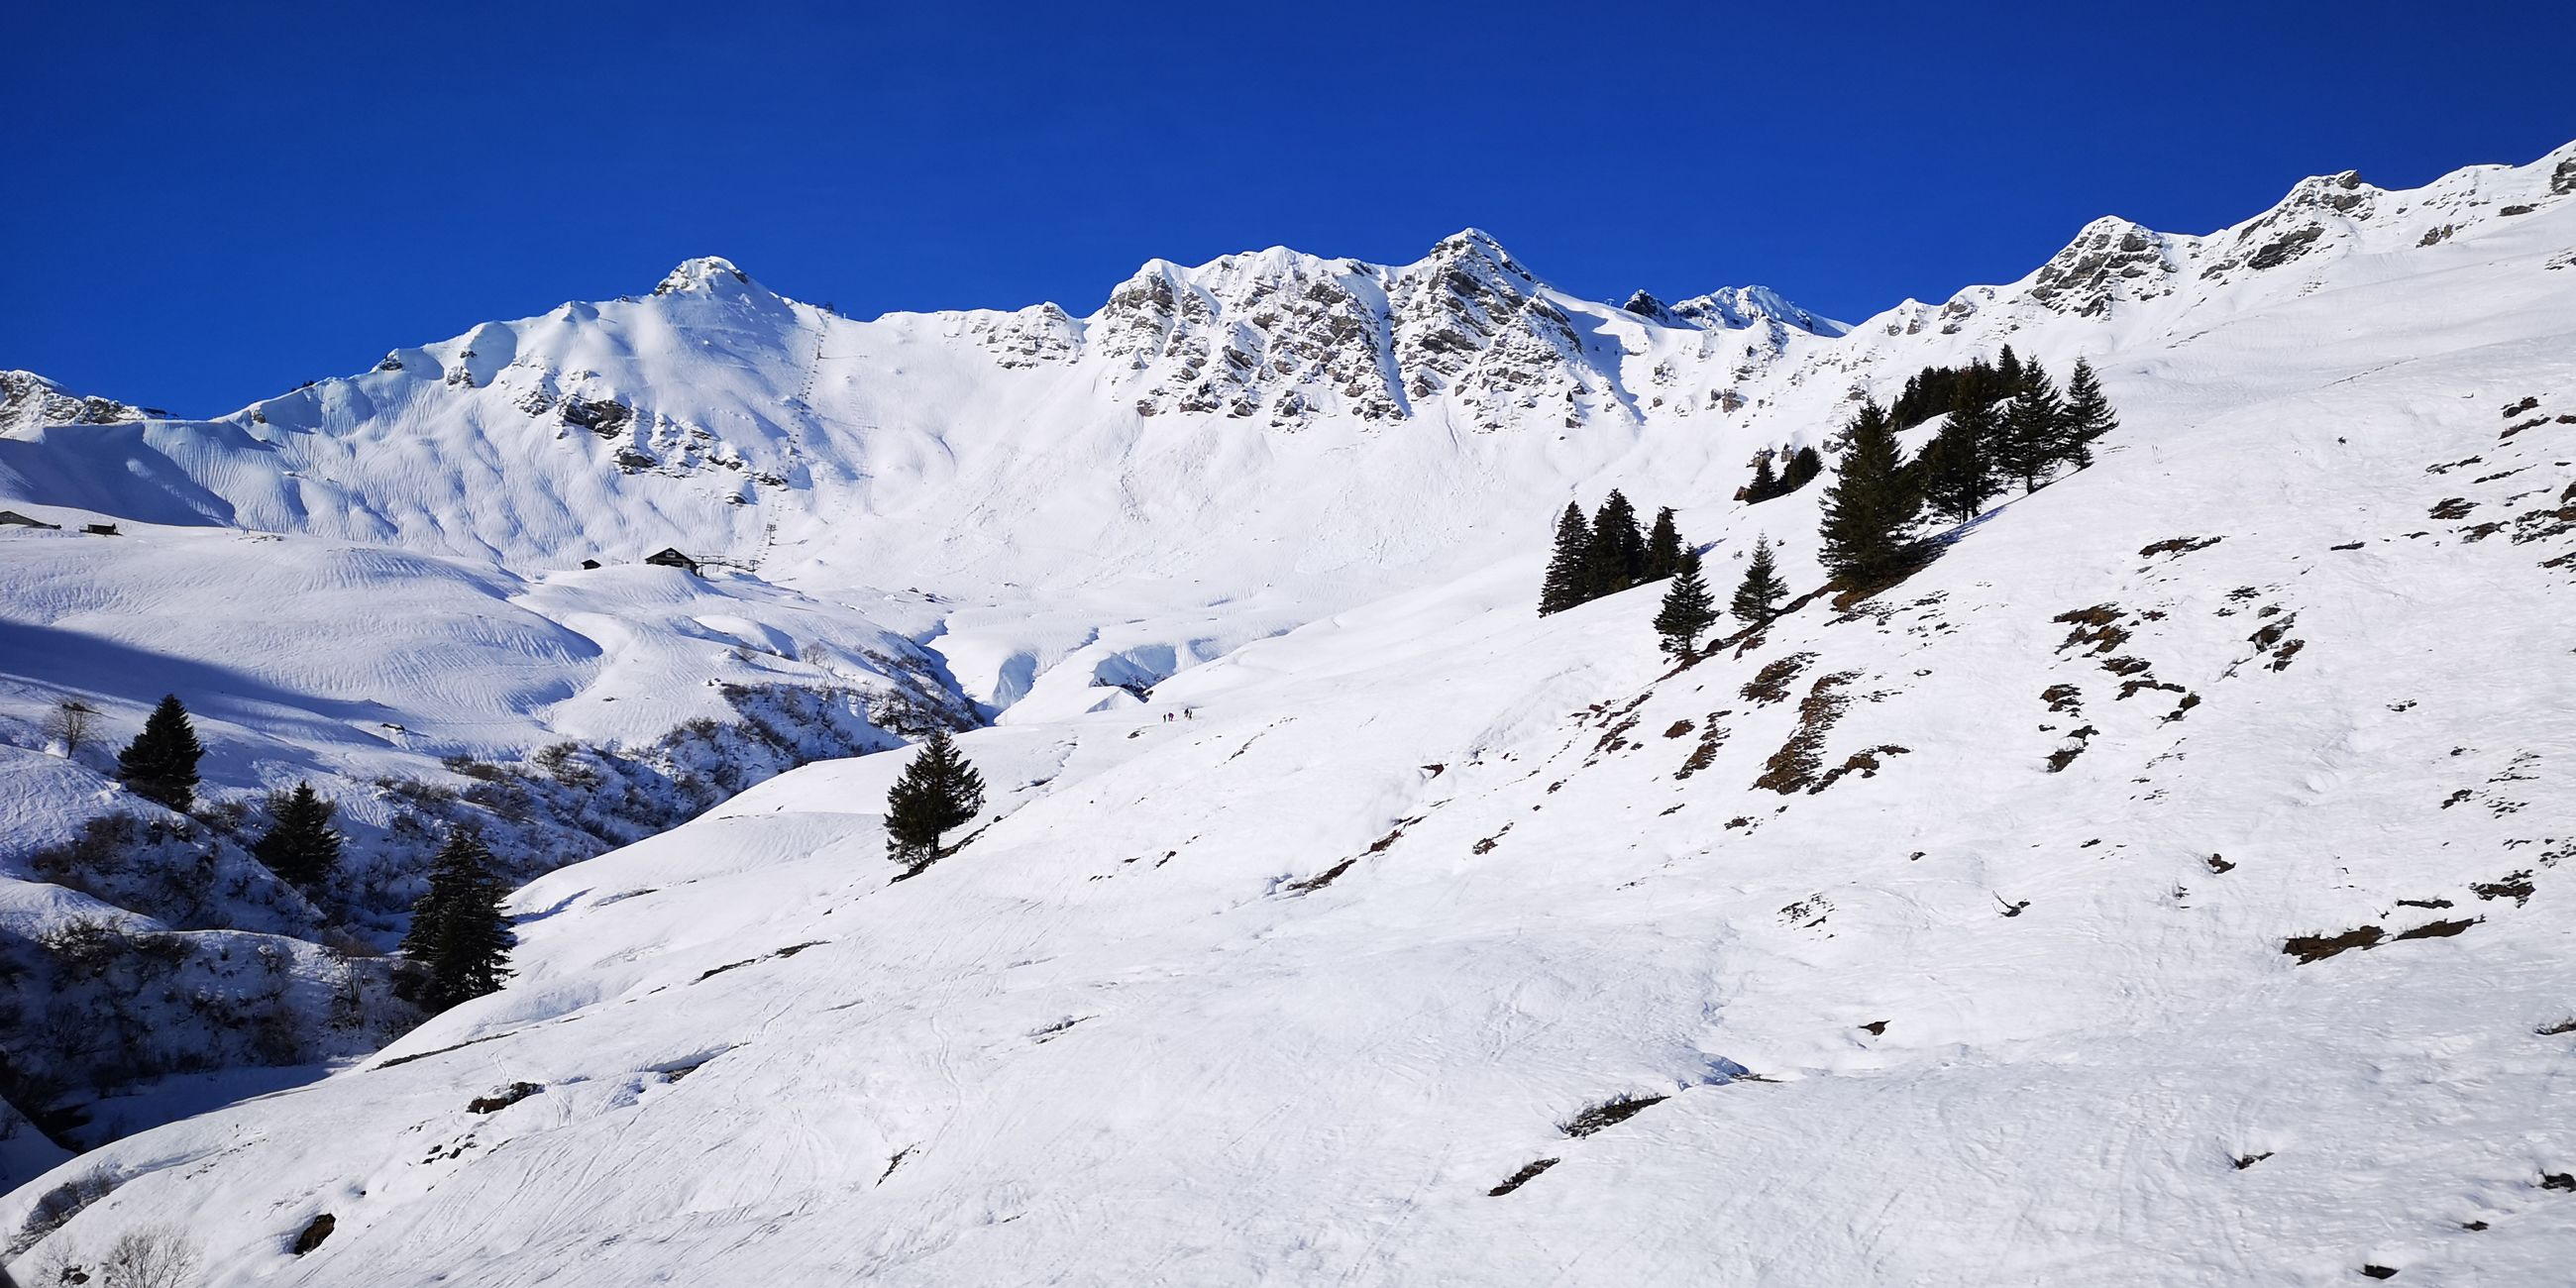 cold temperature, winter, snow, beauty in nature, sky, scenics - nature, mountain, snowcapped mountain, white color, tranquil scene, tranquility, non-urban scene, mountain range, blue, clear sky, day, environment, nature, landscape, no people, extreme weather, mountain peak